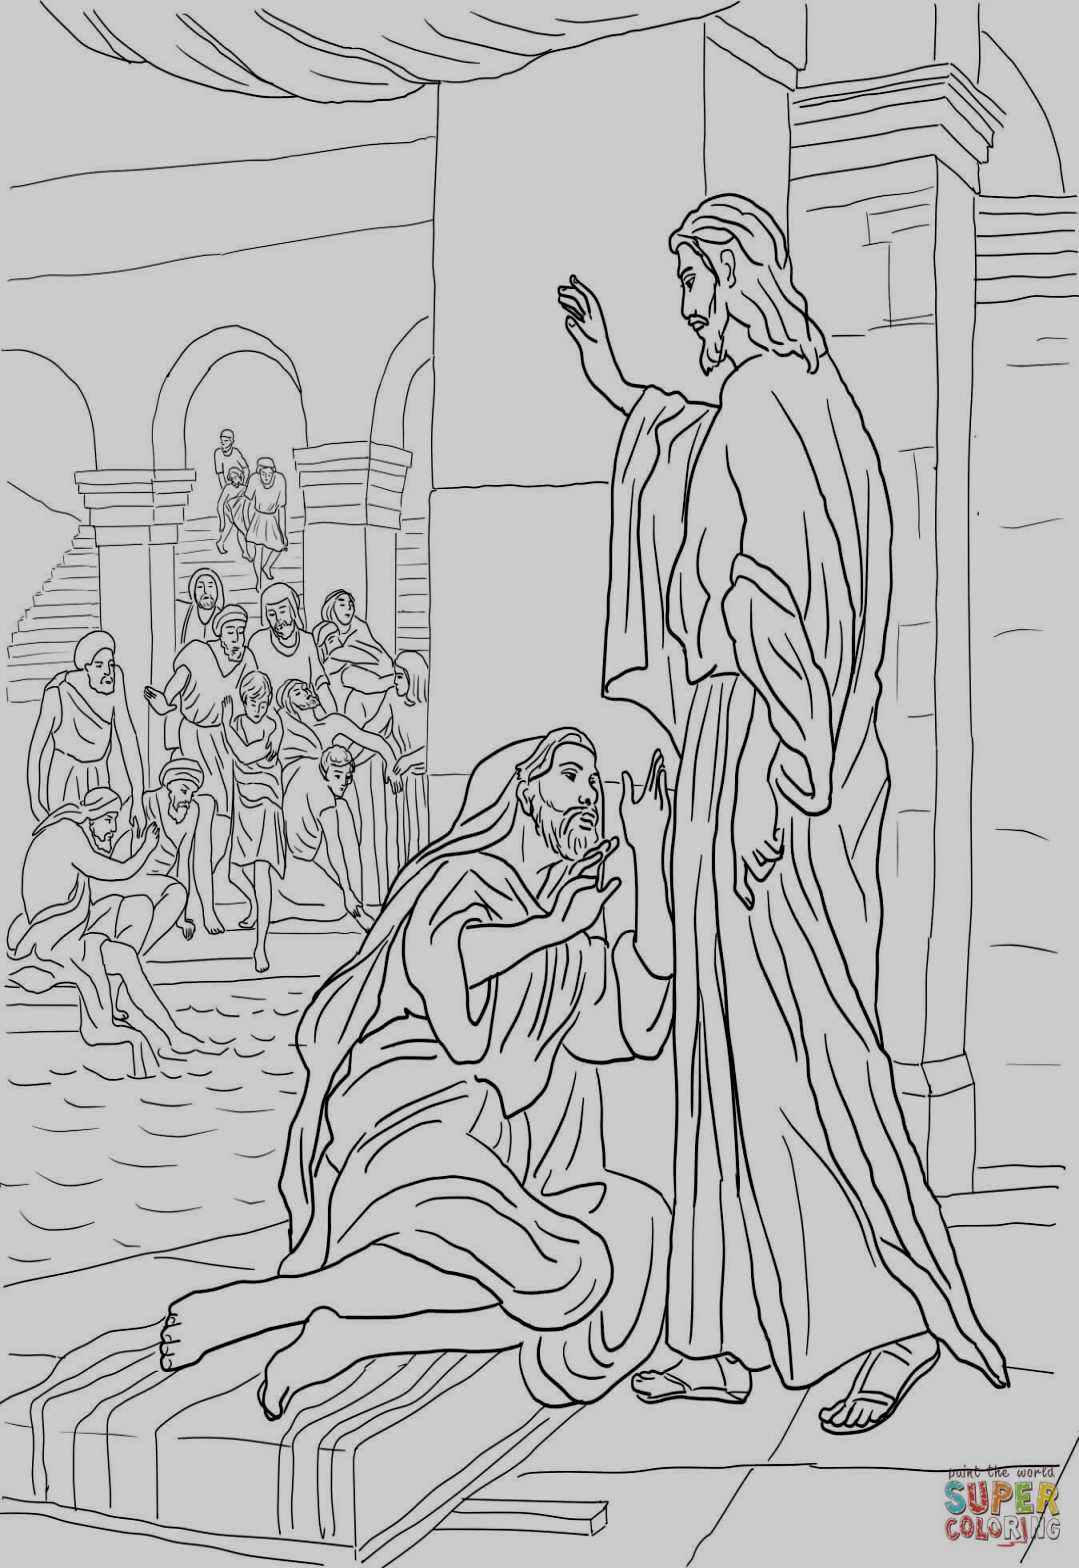 jesus heals the leper coloring page heals the sick because miracles of jesus coloring page page the coloring heals leper jesus